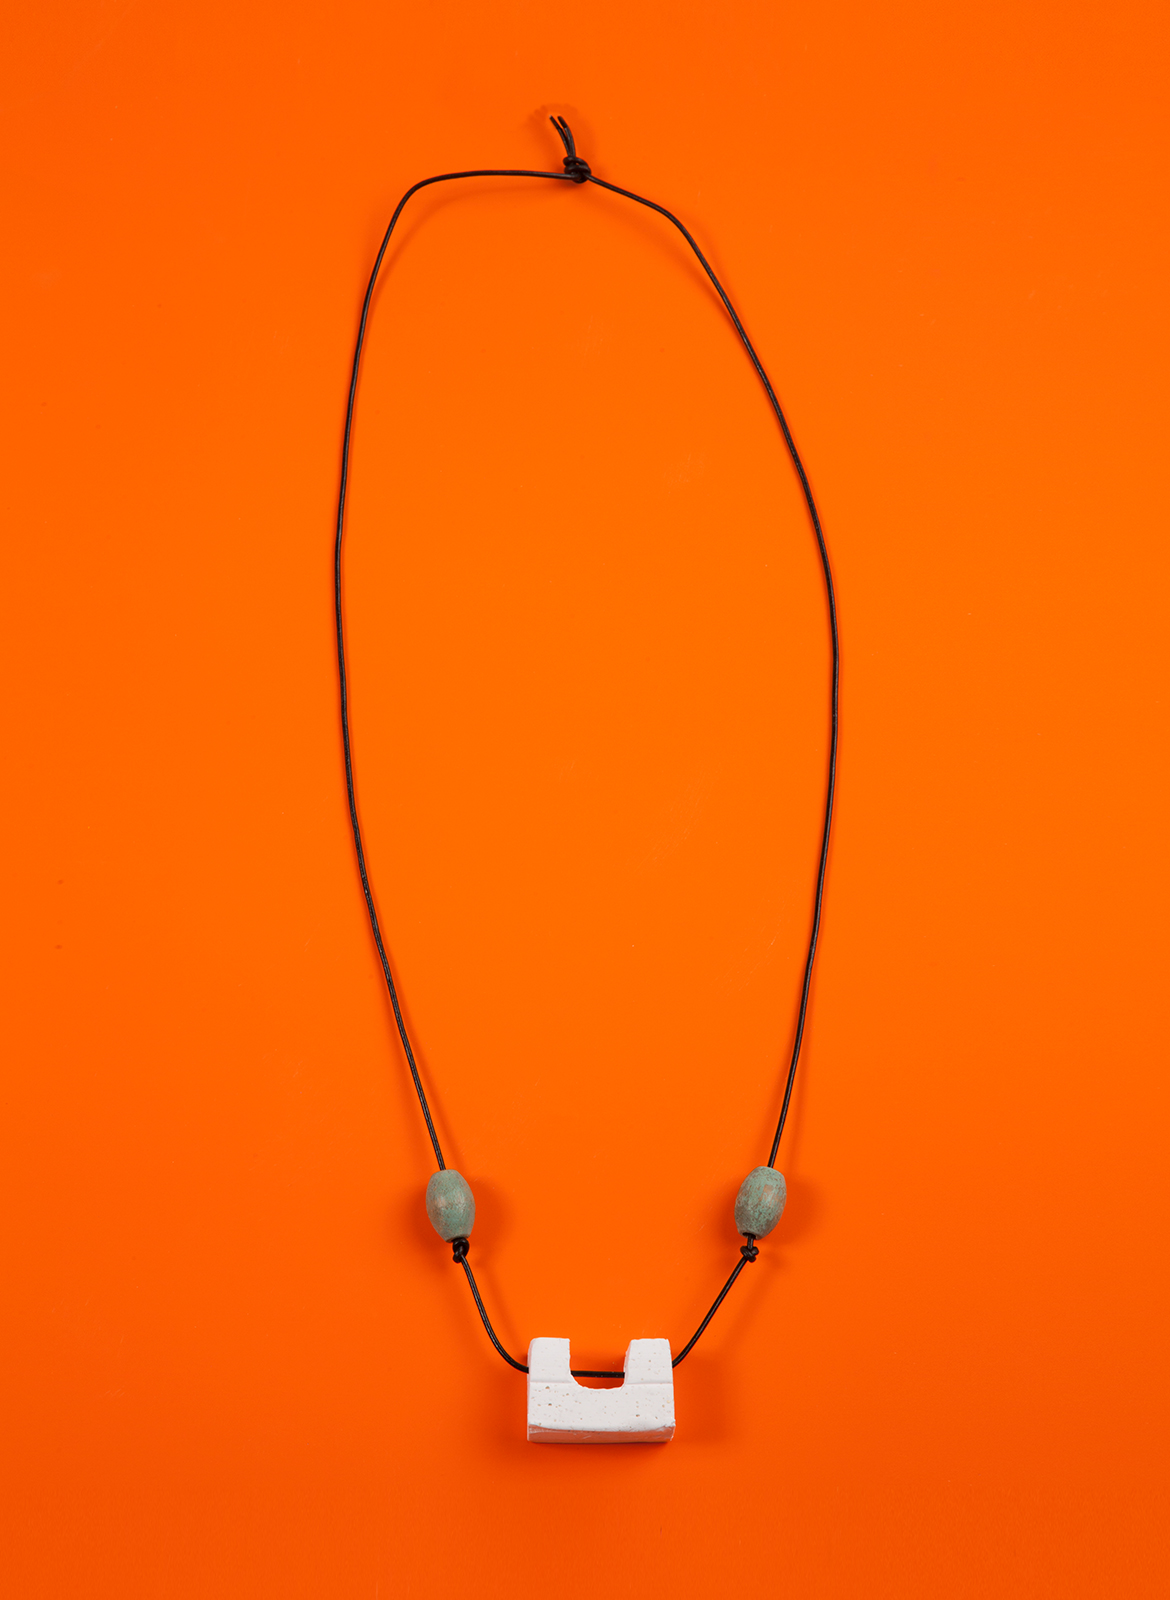 chadkouri-modularnecklace-orangebackground